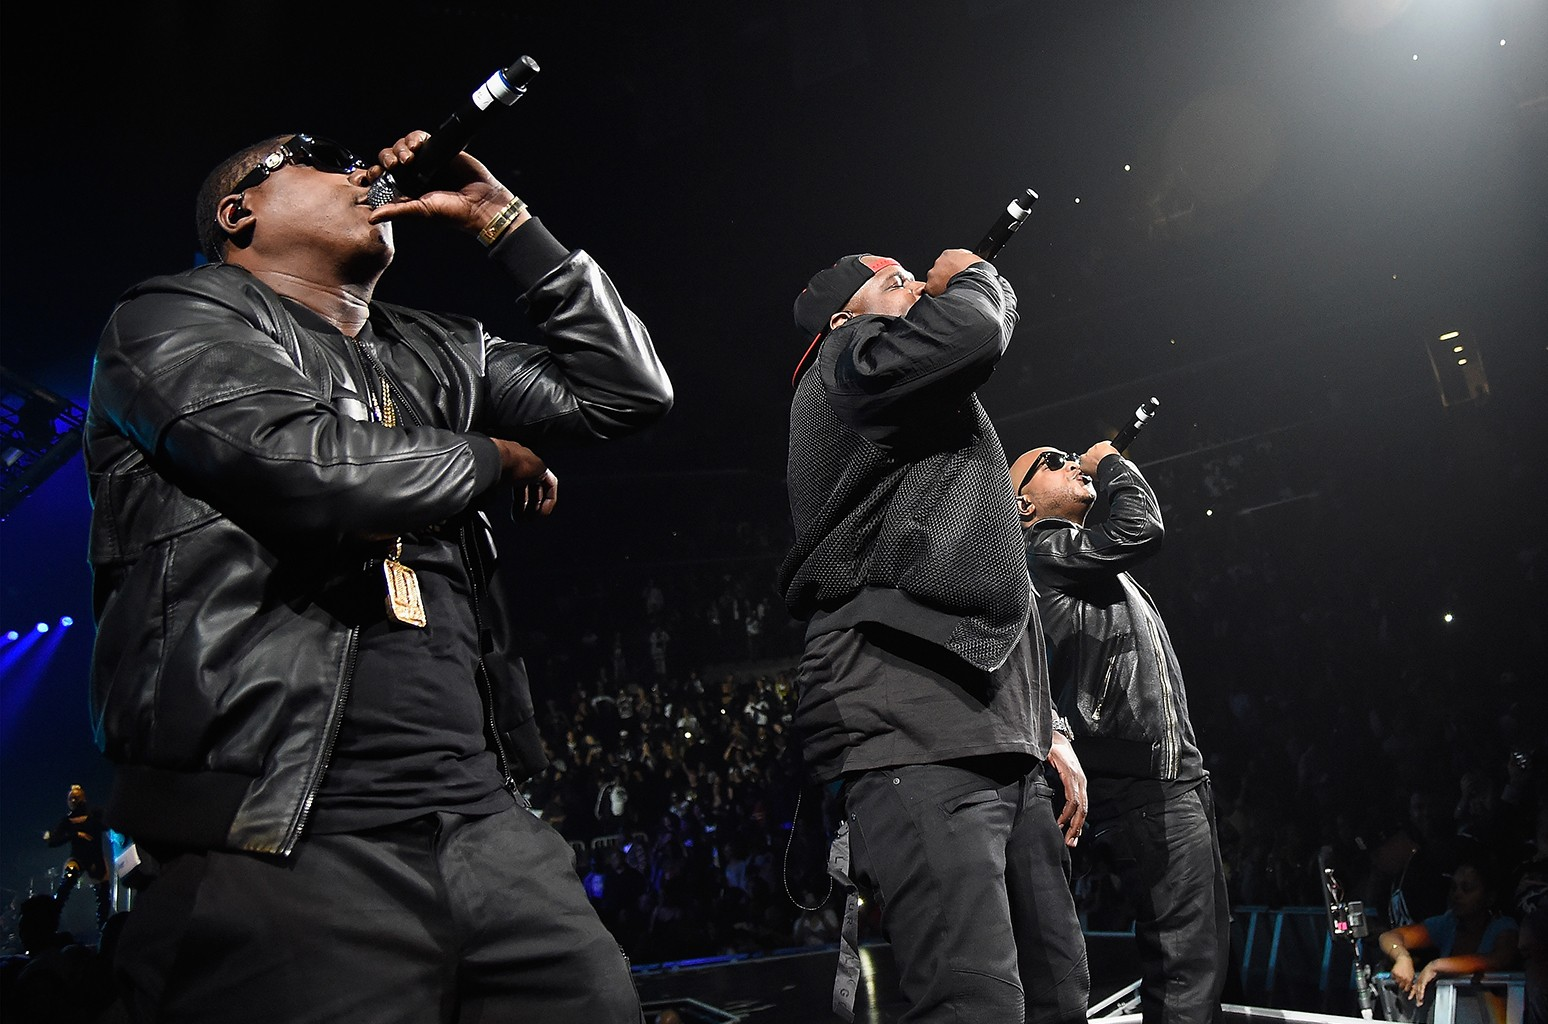 The Lox perform at Barclays Center on May 21, 2016 in New York City.